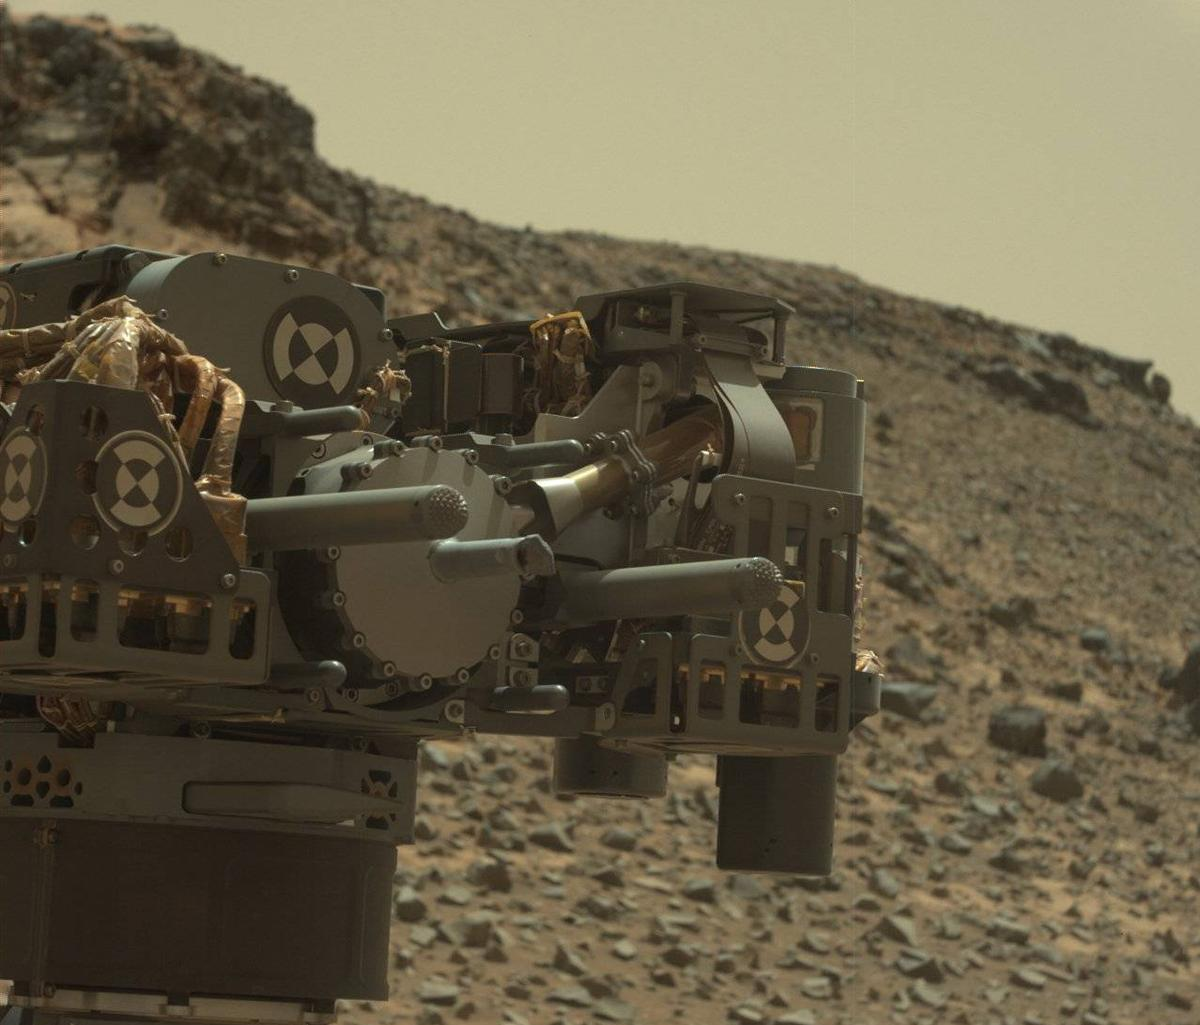 NASA says that the short occurred during operations with Curiosity's drill assembly (Image: NASA/JPL-Caltech/MSSS)